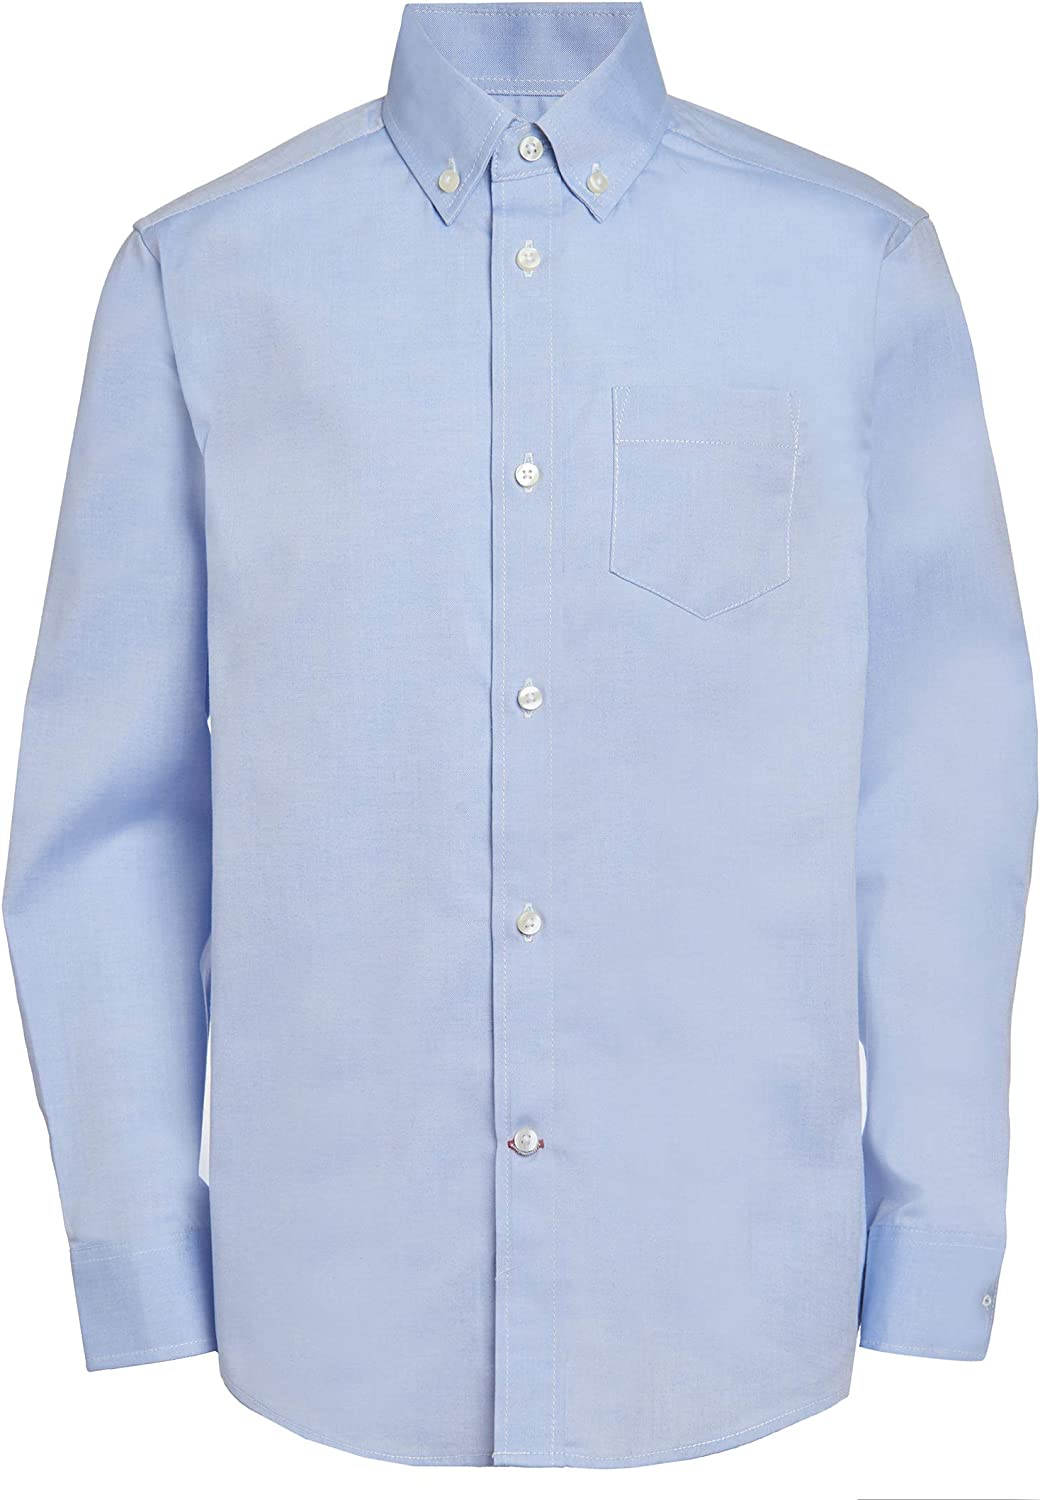 Tommy Hilfiger San Antonio Mall Boys Oxford Long Max 75% OFF Shirt Collared Dress Sleeve But